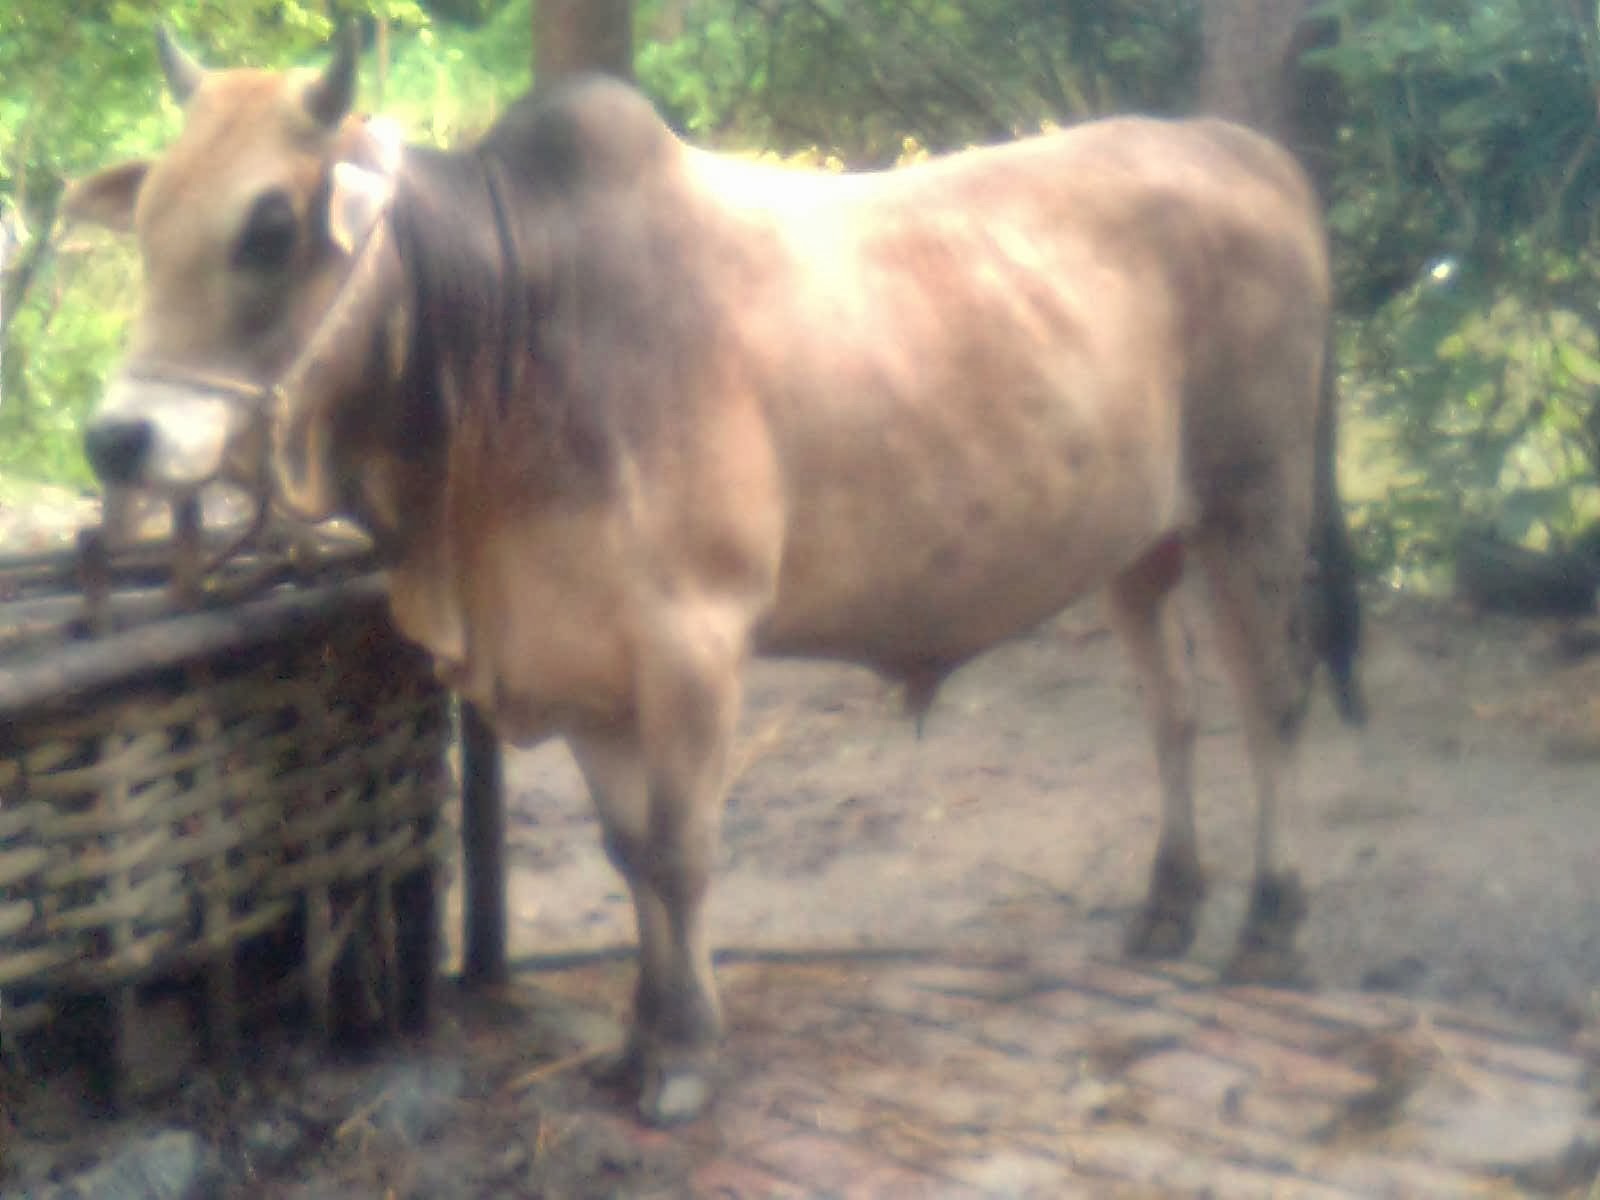 - Eid Ul Azha Animal: Korbani Goru - Edi Ul Azha Cow Image and Price